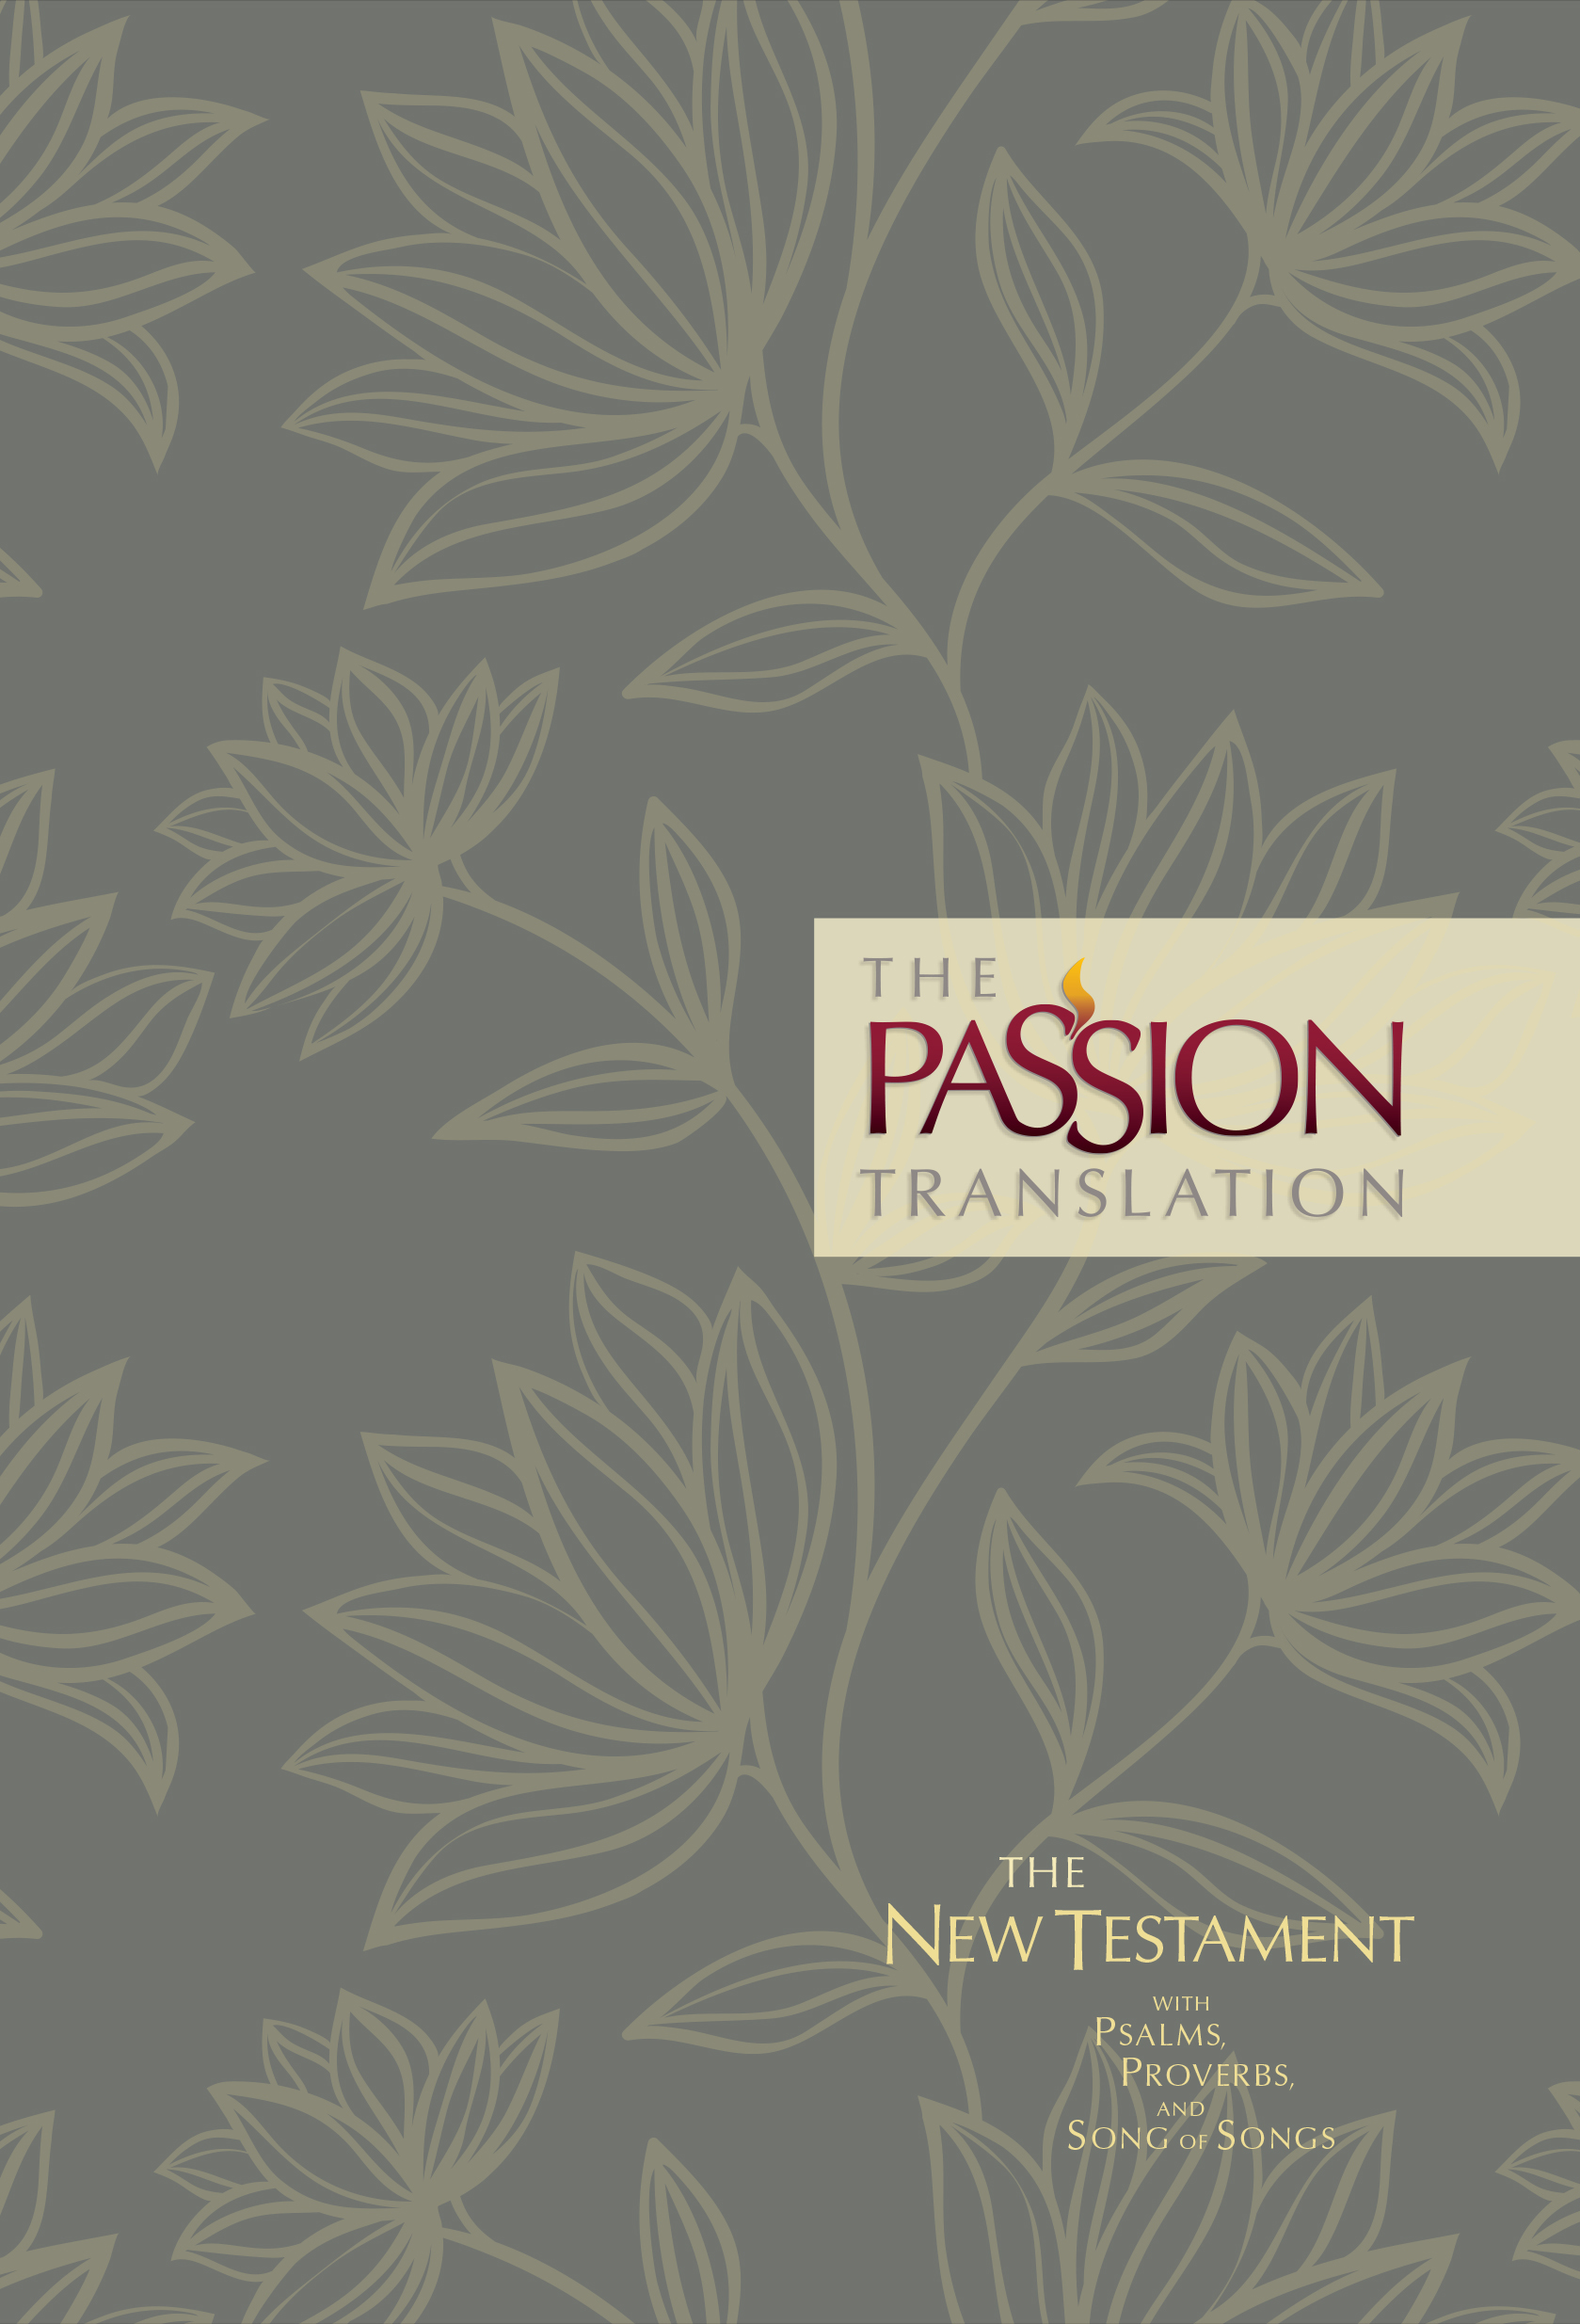 The New Testament with Psalms, Proverbs, and Song of Songs (2nd Edition) Hc Floral: The Passion Translation